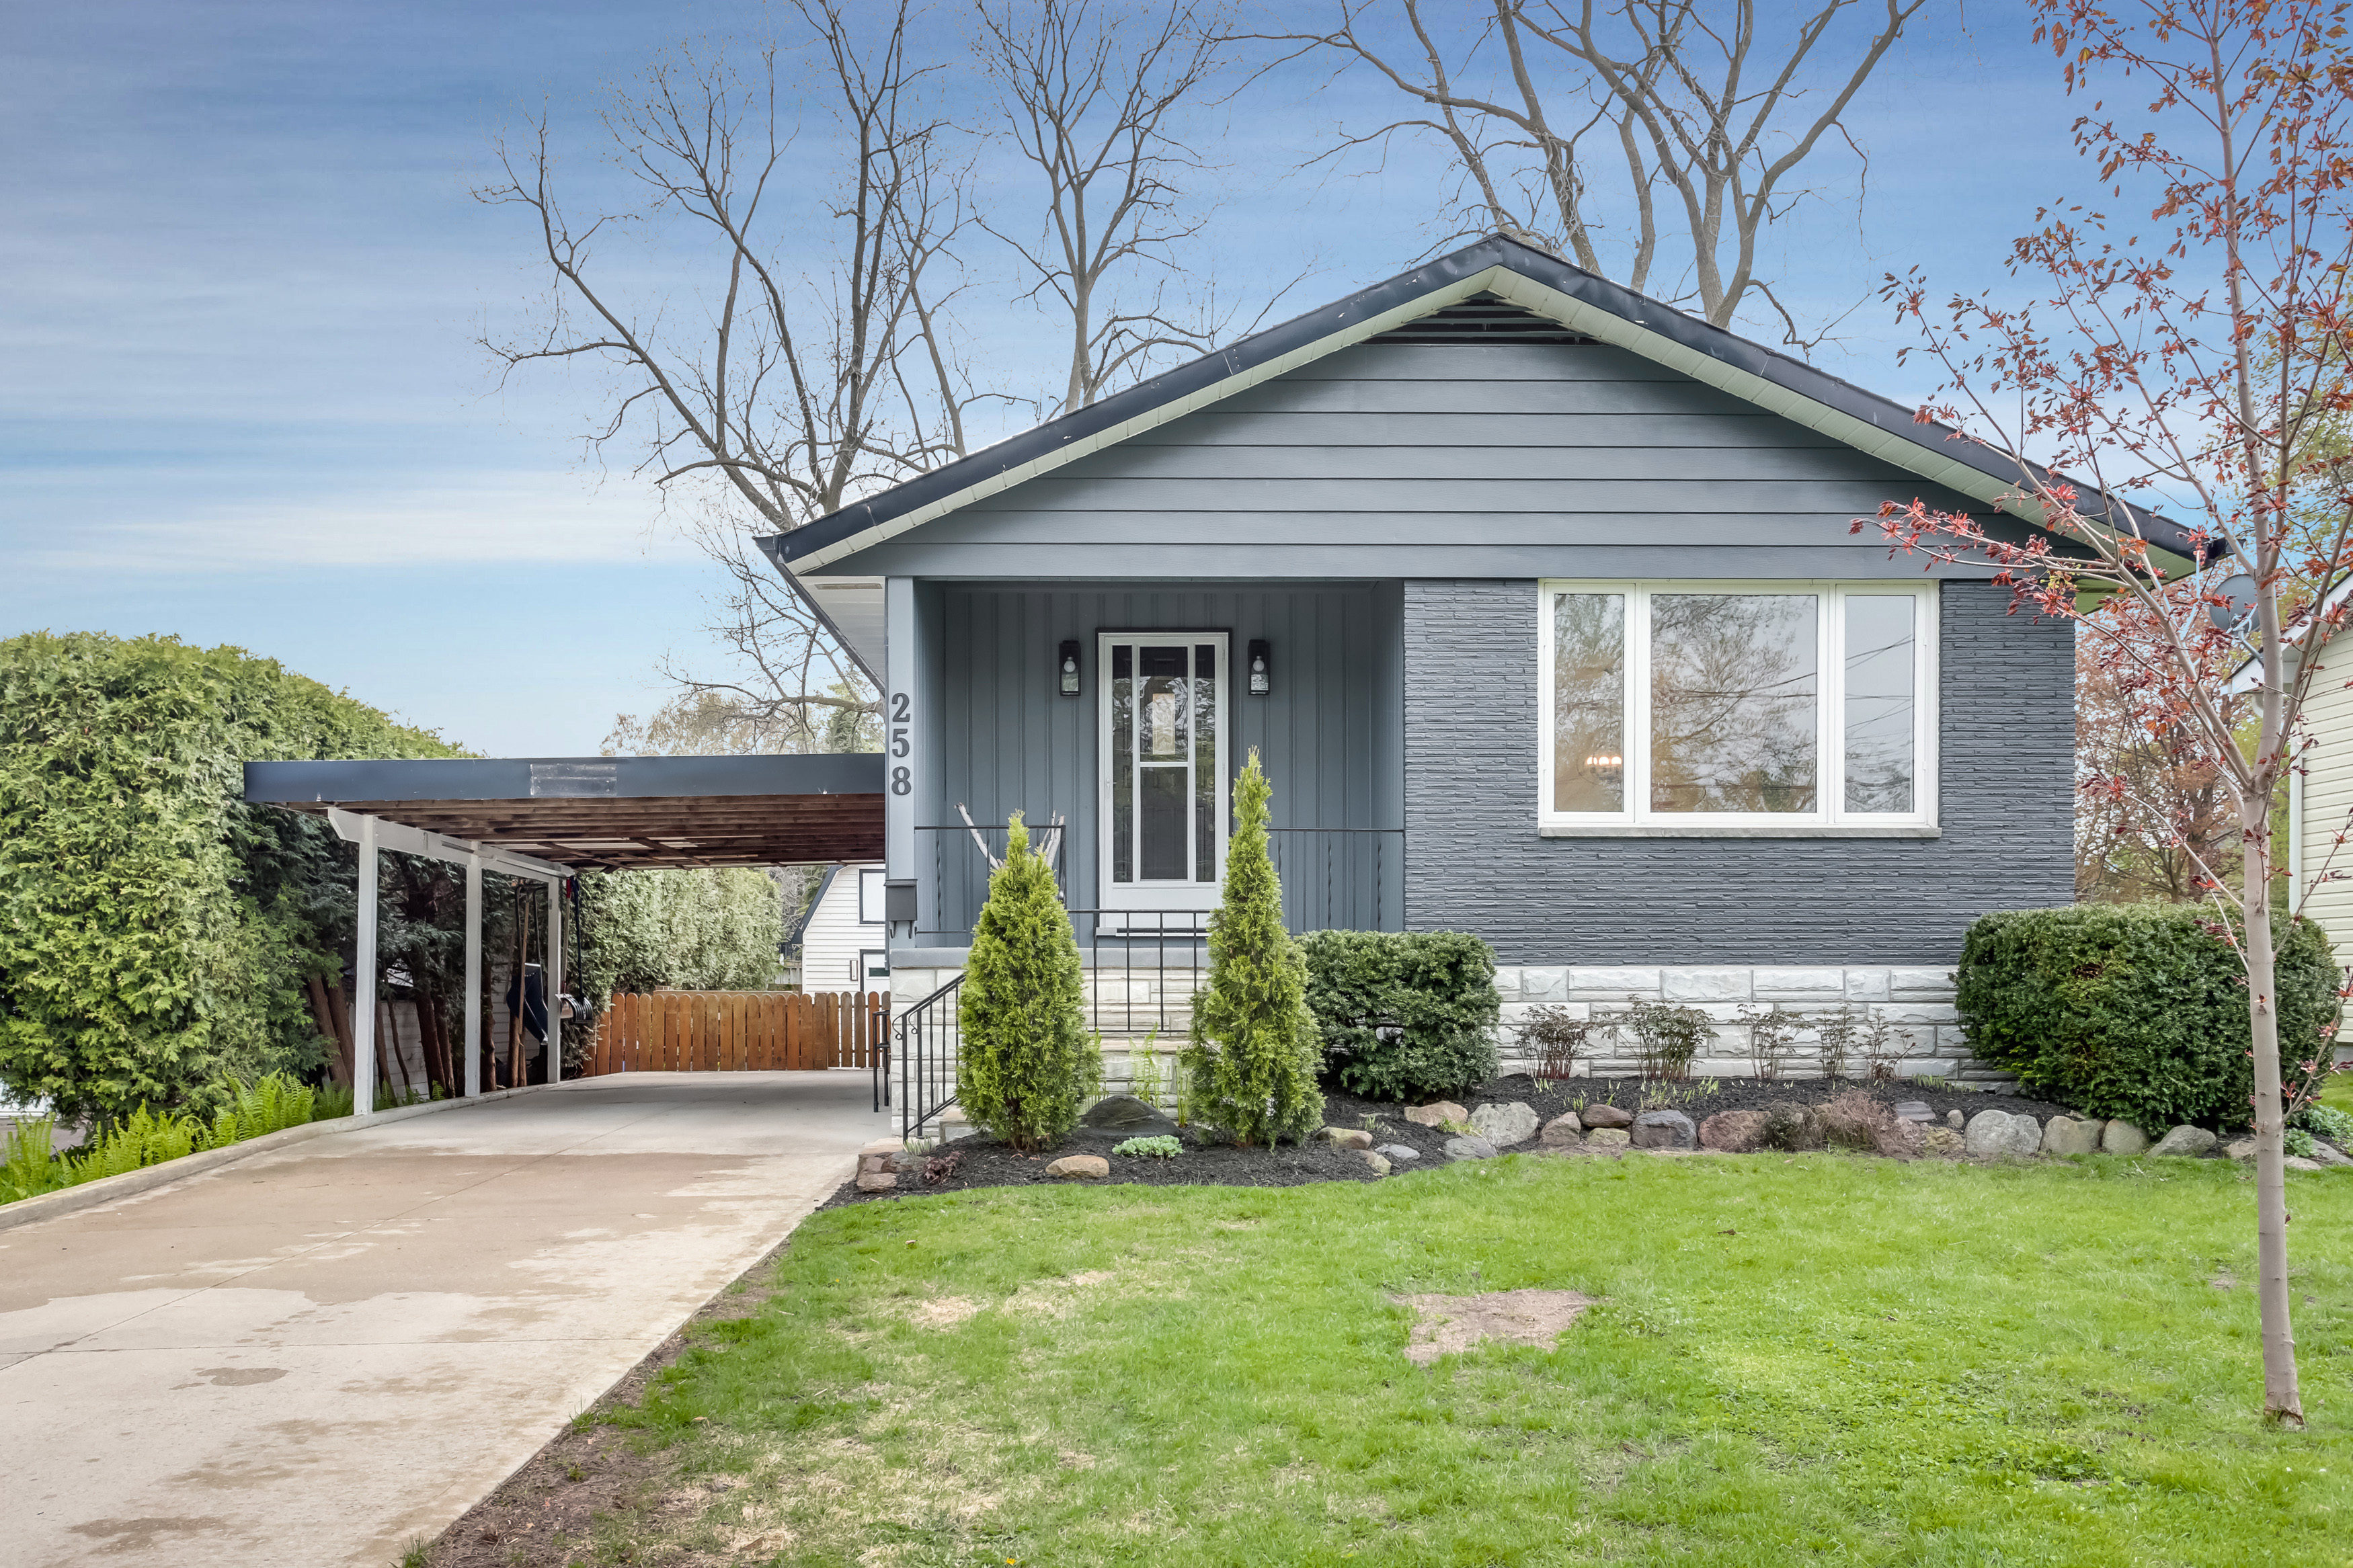 258 Fourth Street West, Collingwood<span class='property-location-view'></span>